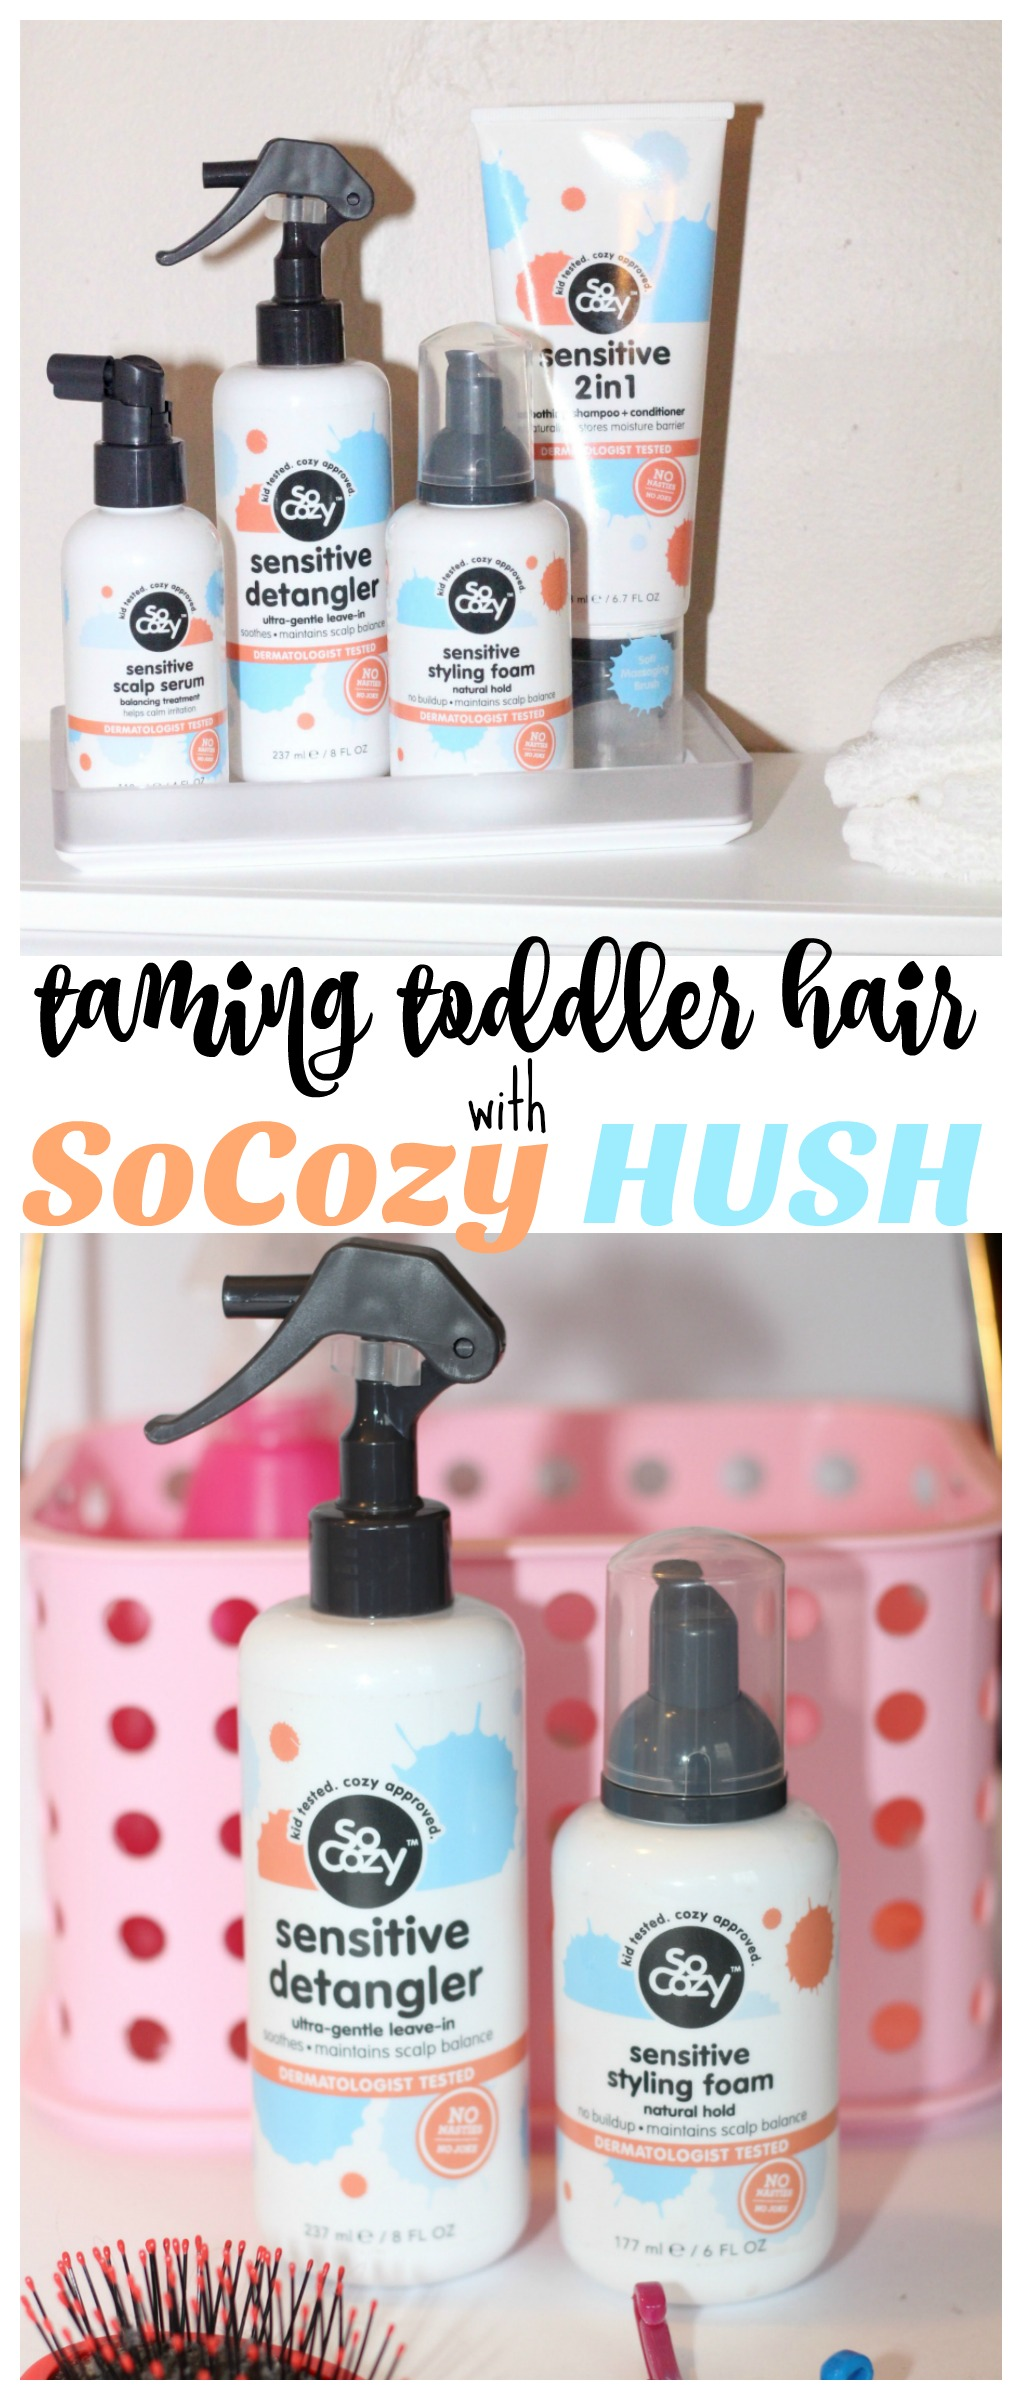 Taming Toddler Hair with SoCozy HUSH